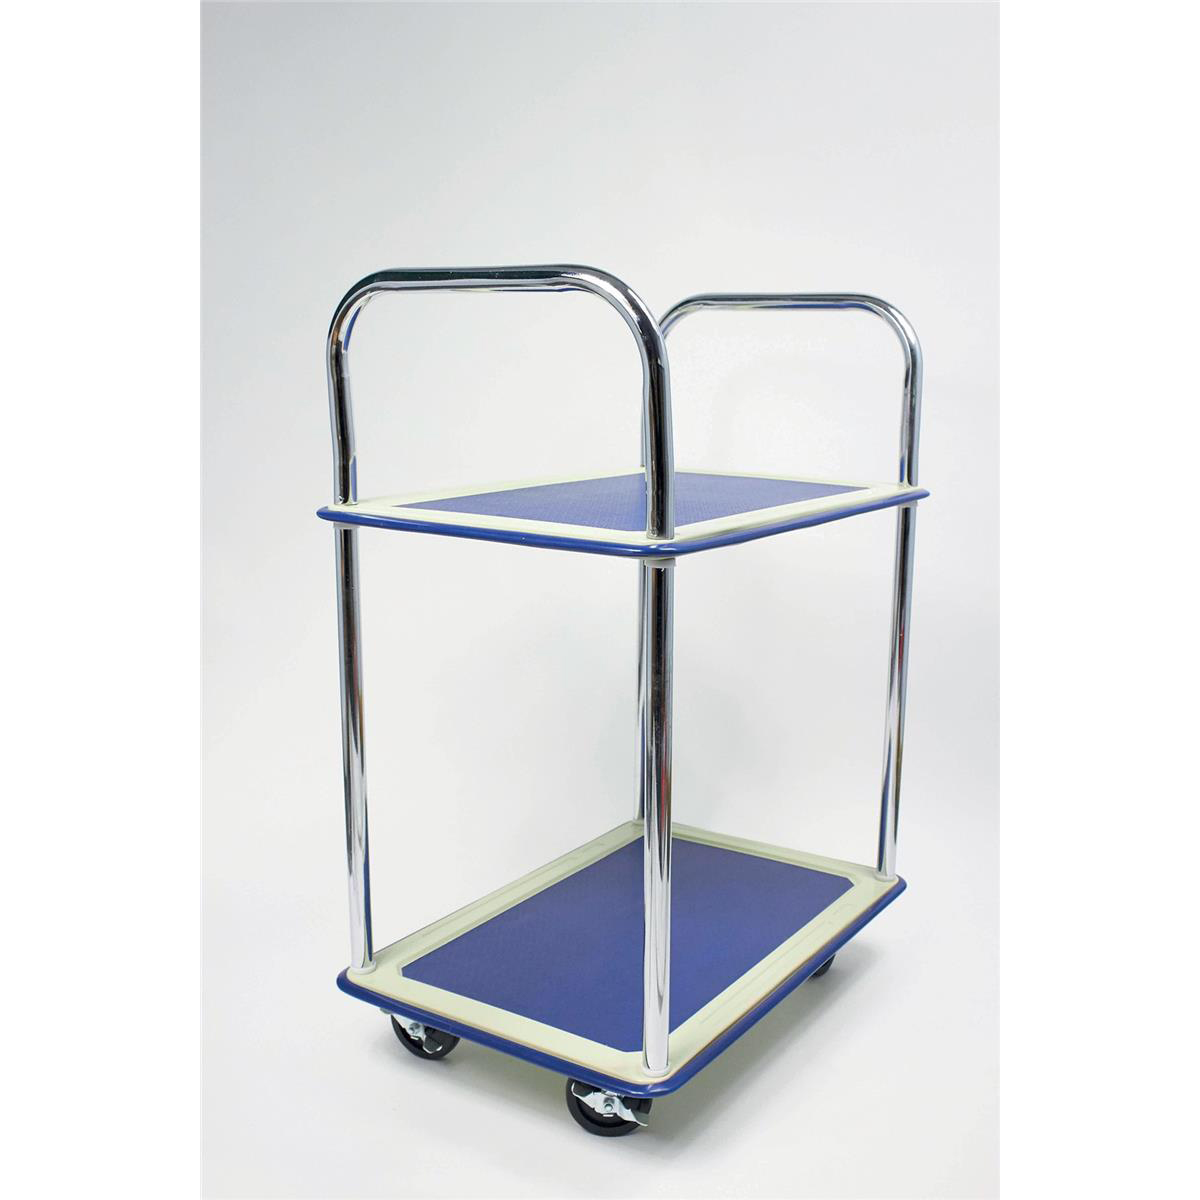 Image for 5 Star Facilities Trolley Lightweight Steel Frame 2 Shelf Capacity 120kg Chrome W470xD725xH950mm